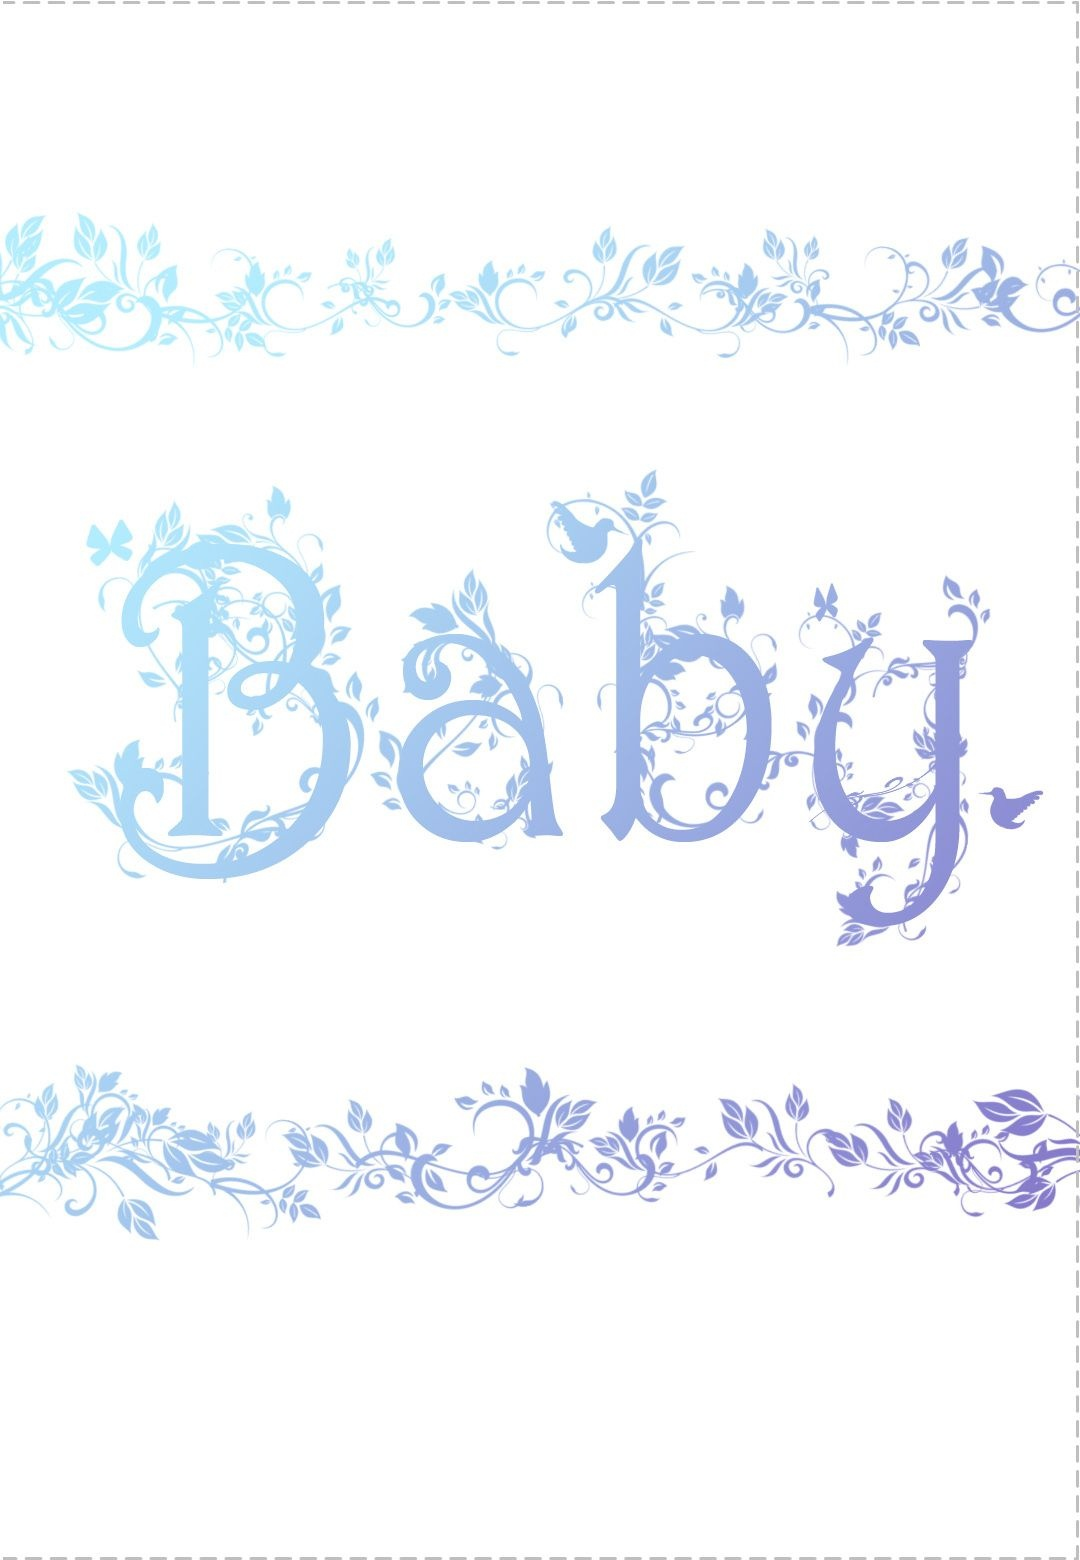 Free Printable Decorated Baby Card Greeting Card   Baby Shower Ideas - Free Printable Baby Cards